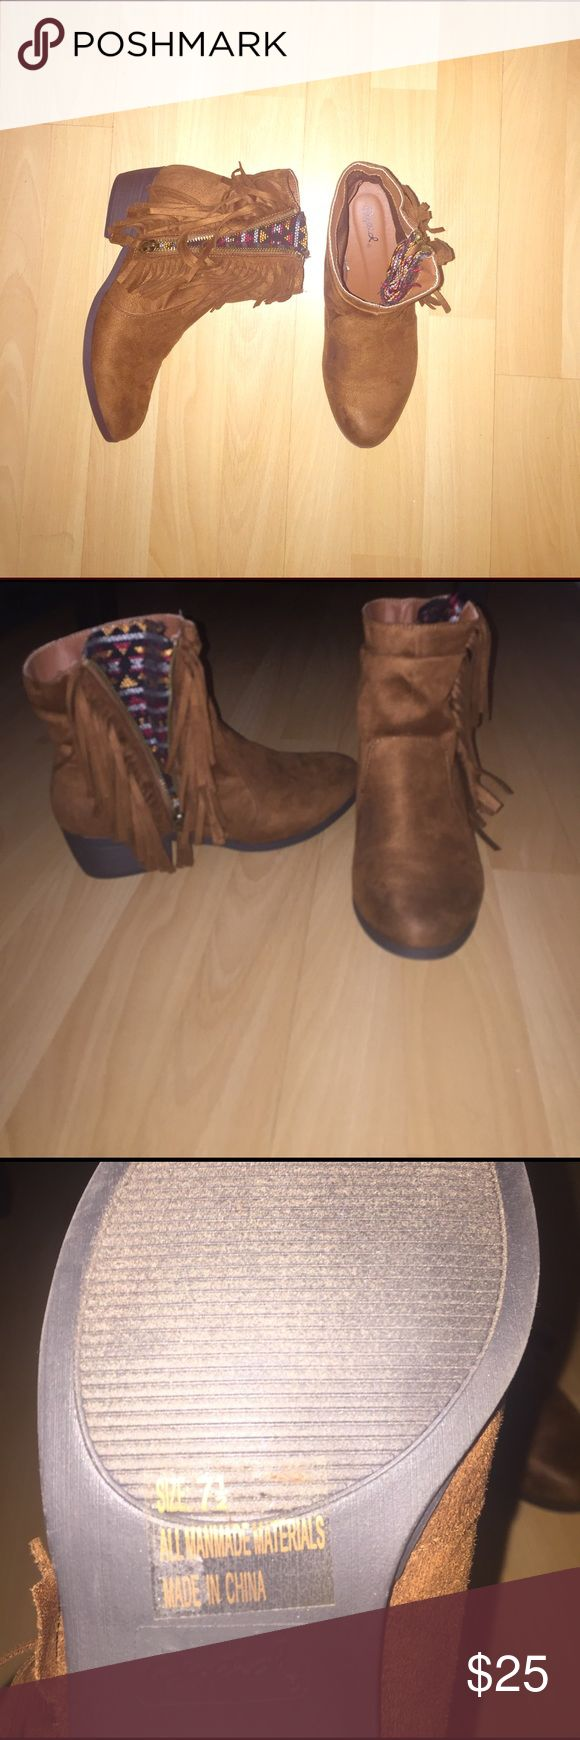 Fringe Ankle Boots Size 7.5 women's. Clean Soles. Gently used. Shoes Ankle Boots & Booties